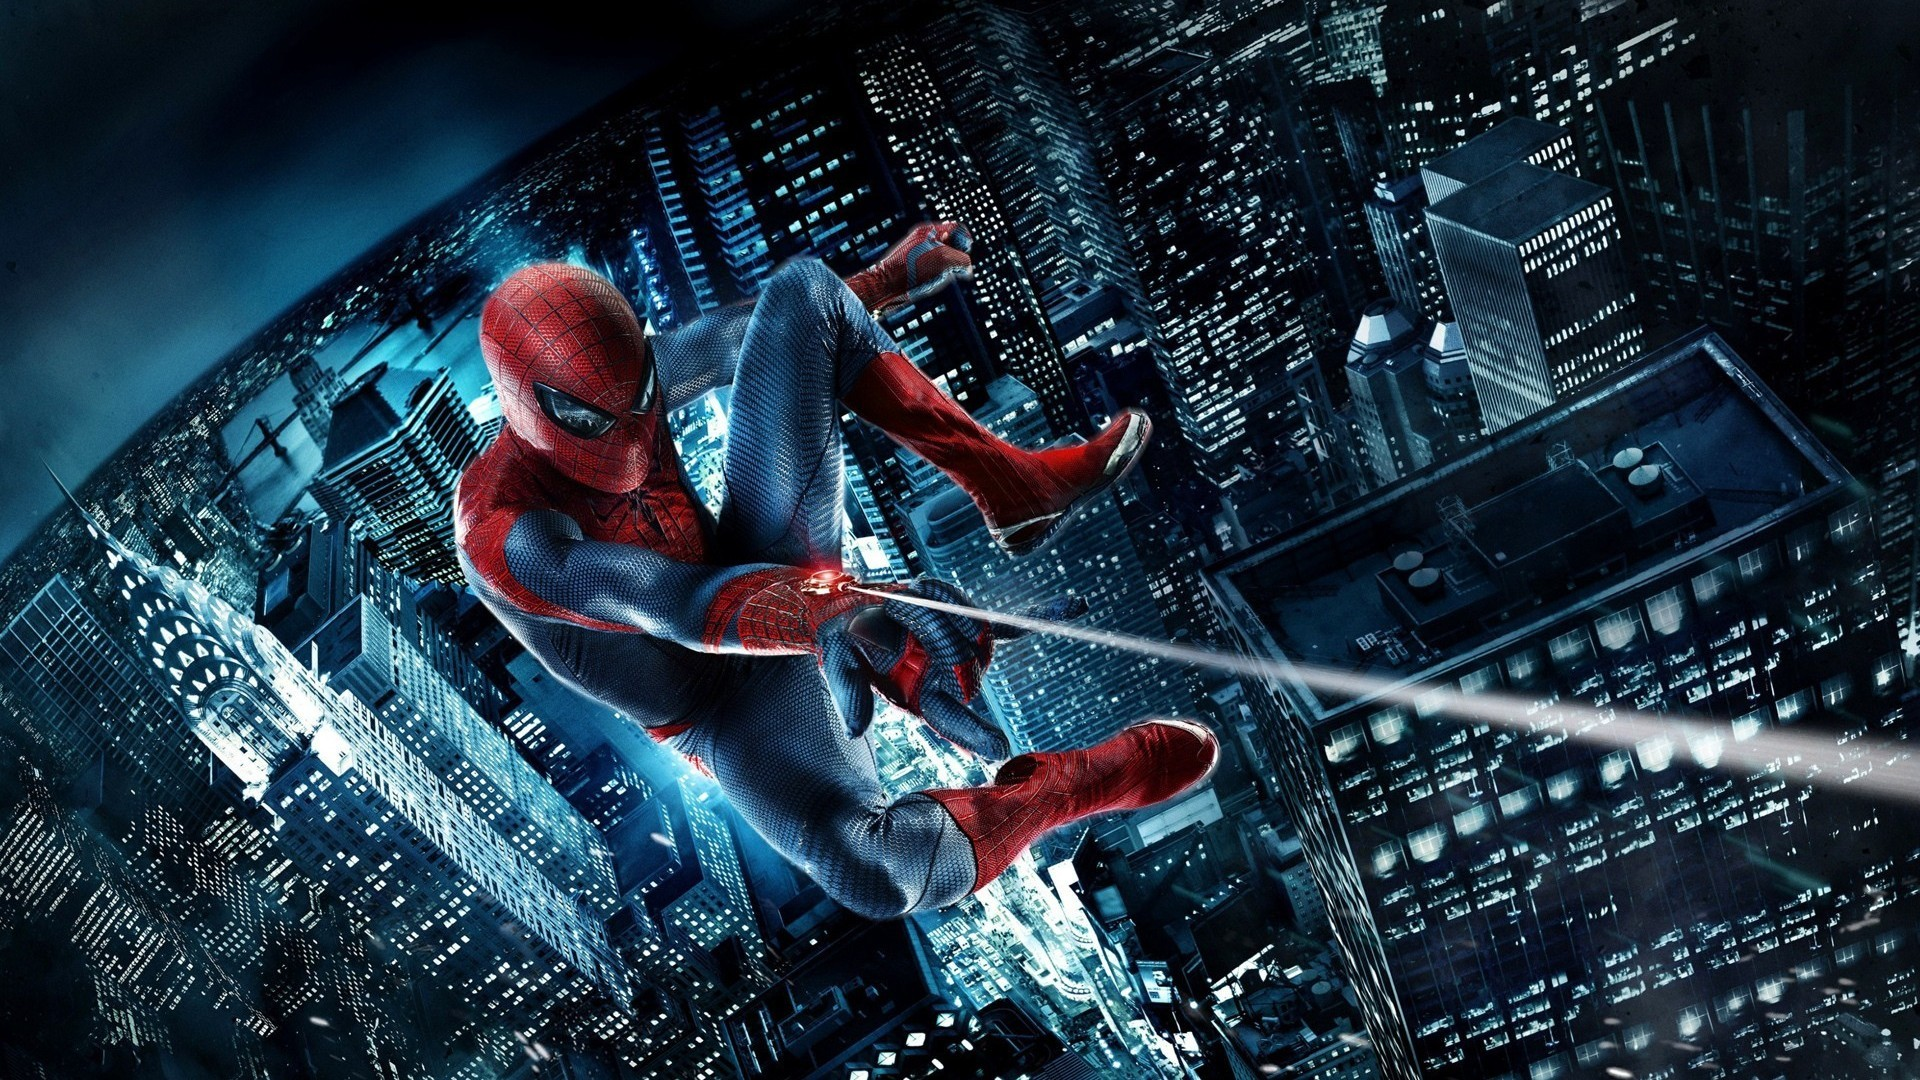 spiderman wallpaper hd download